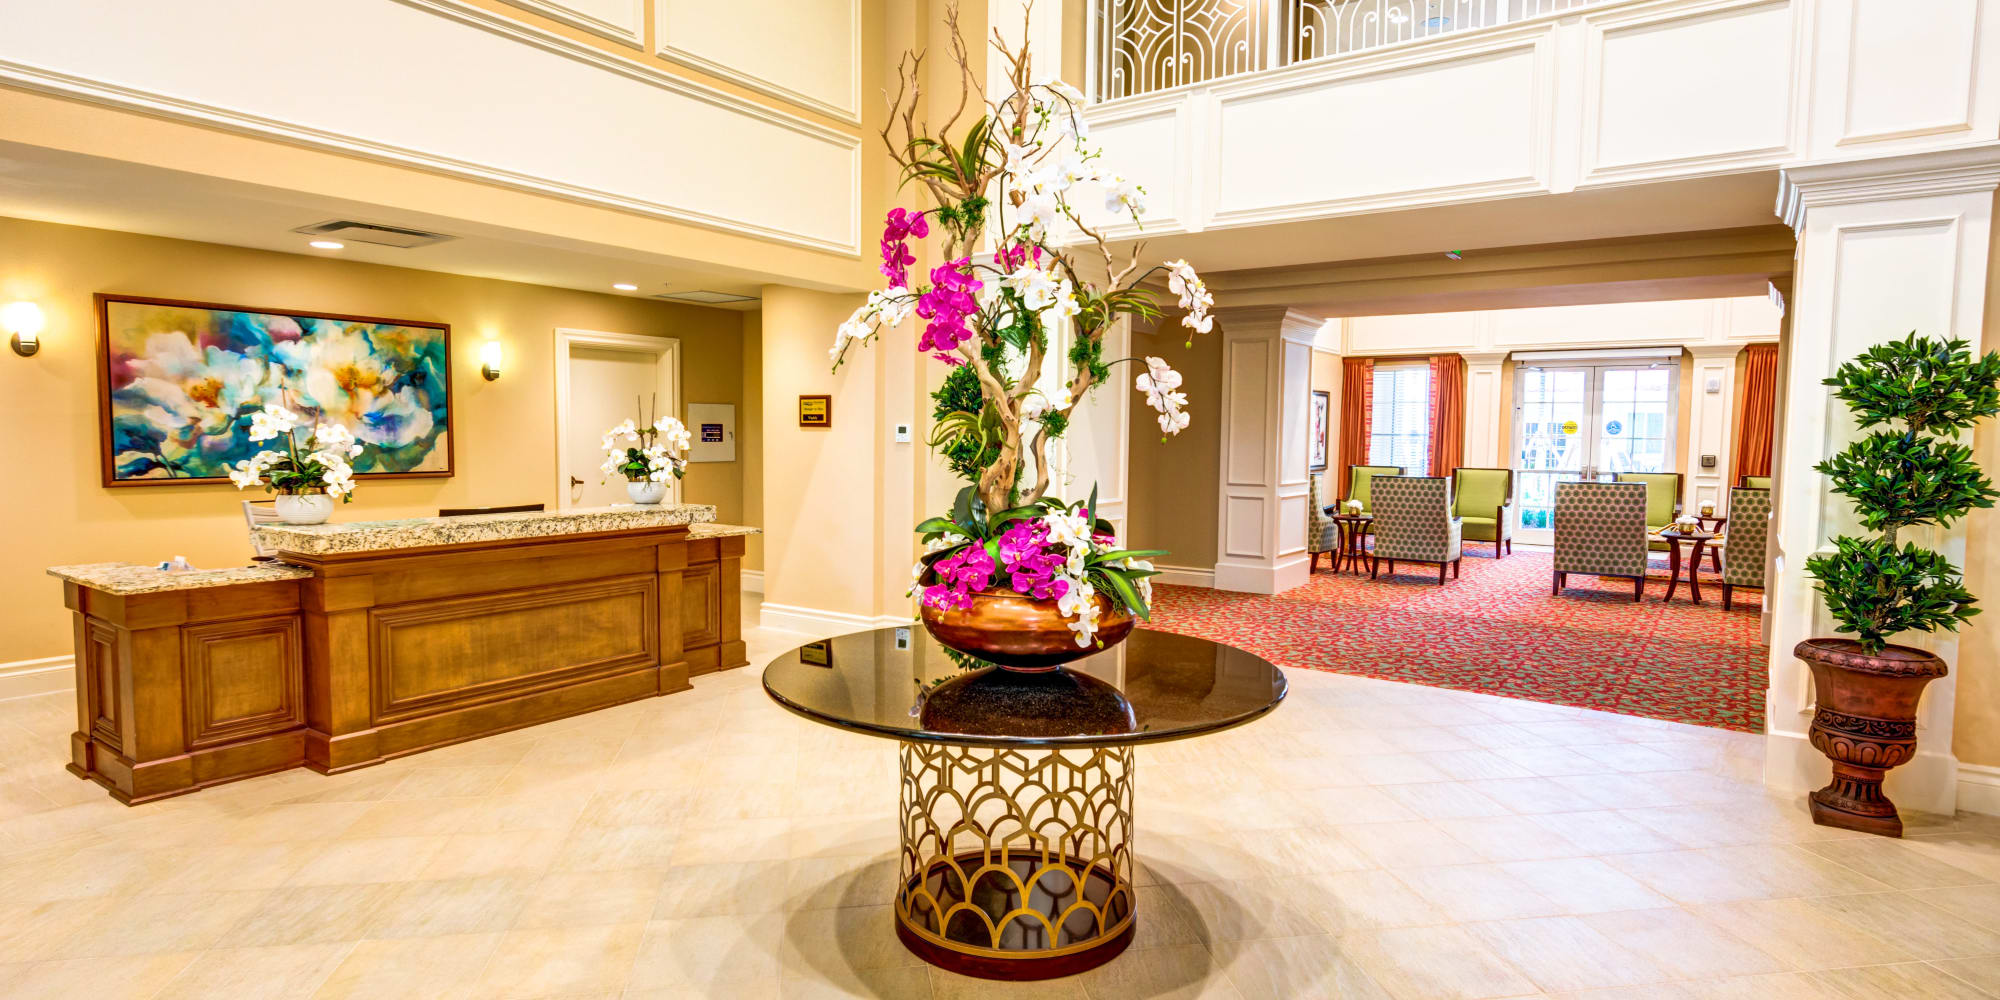 The Meridian at Boca Raton lobby with reception desk and center console table with large floral arrangement